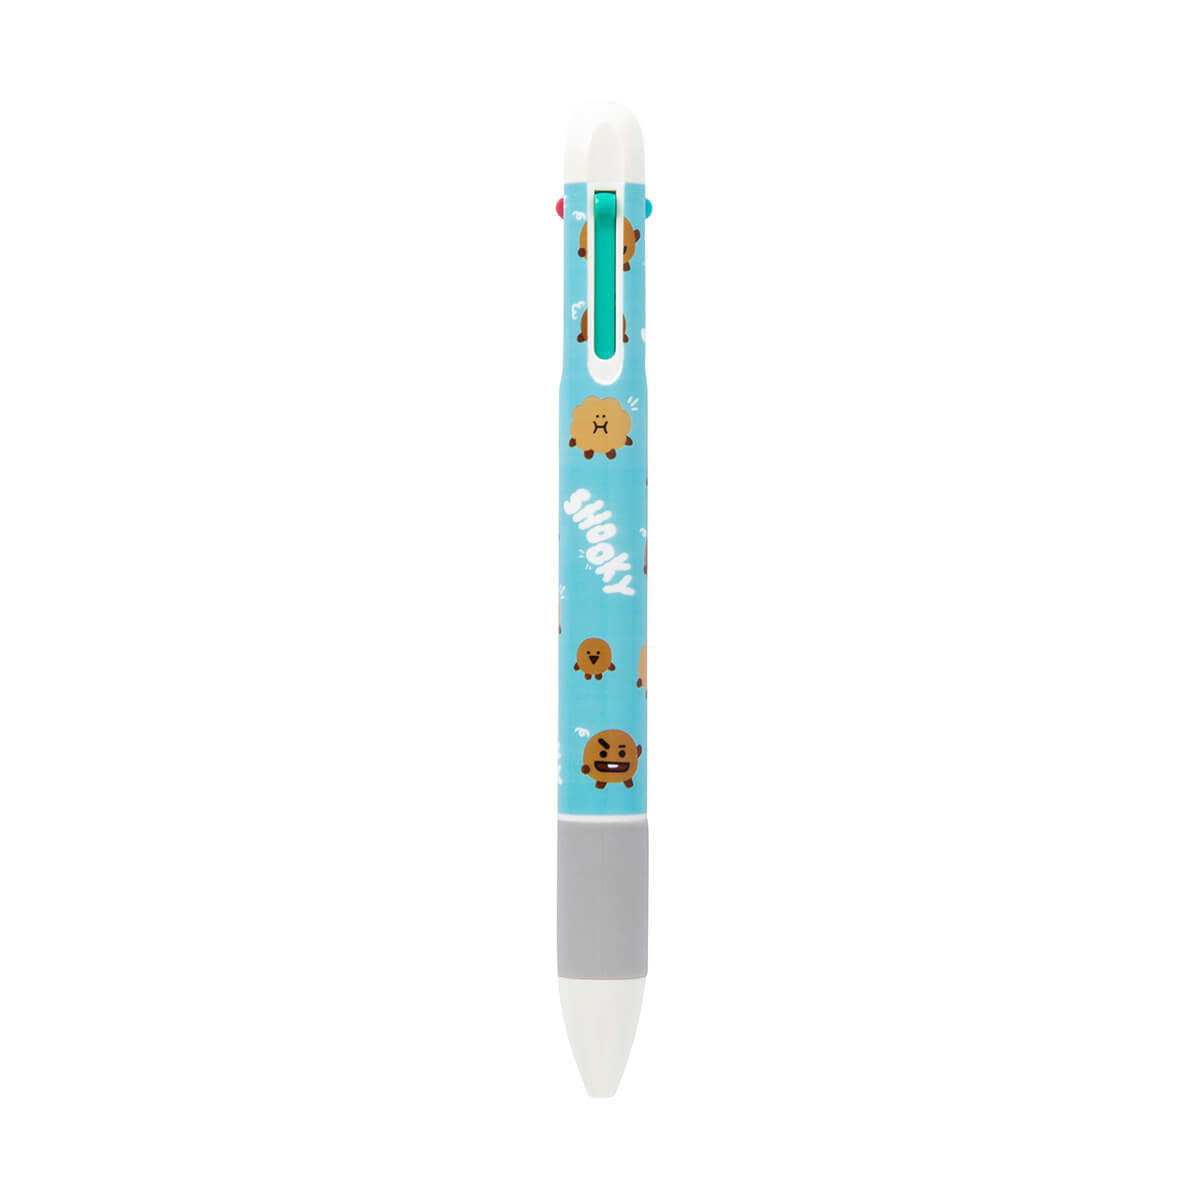 BT21 SHOOKY 4-Color Pen